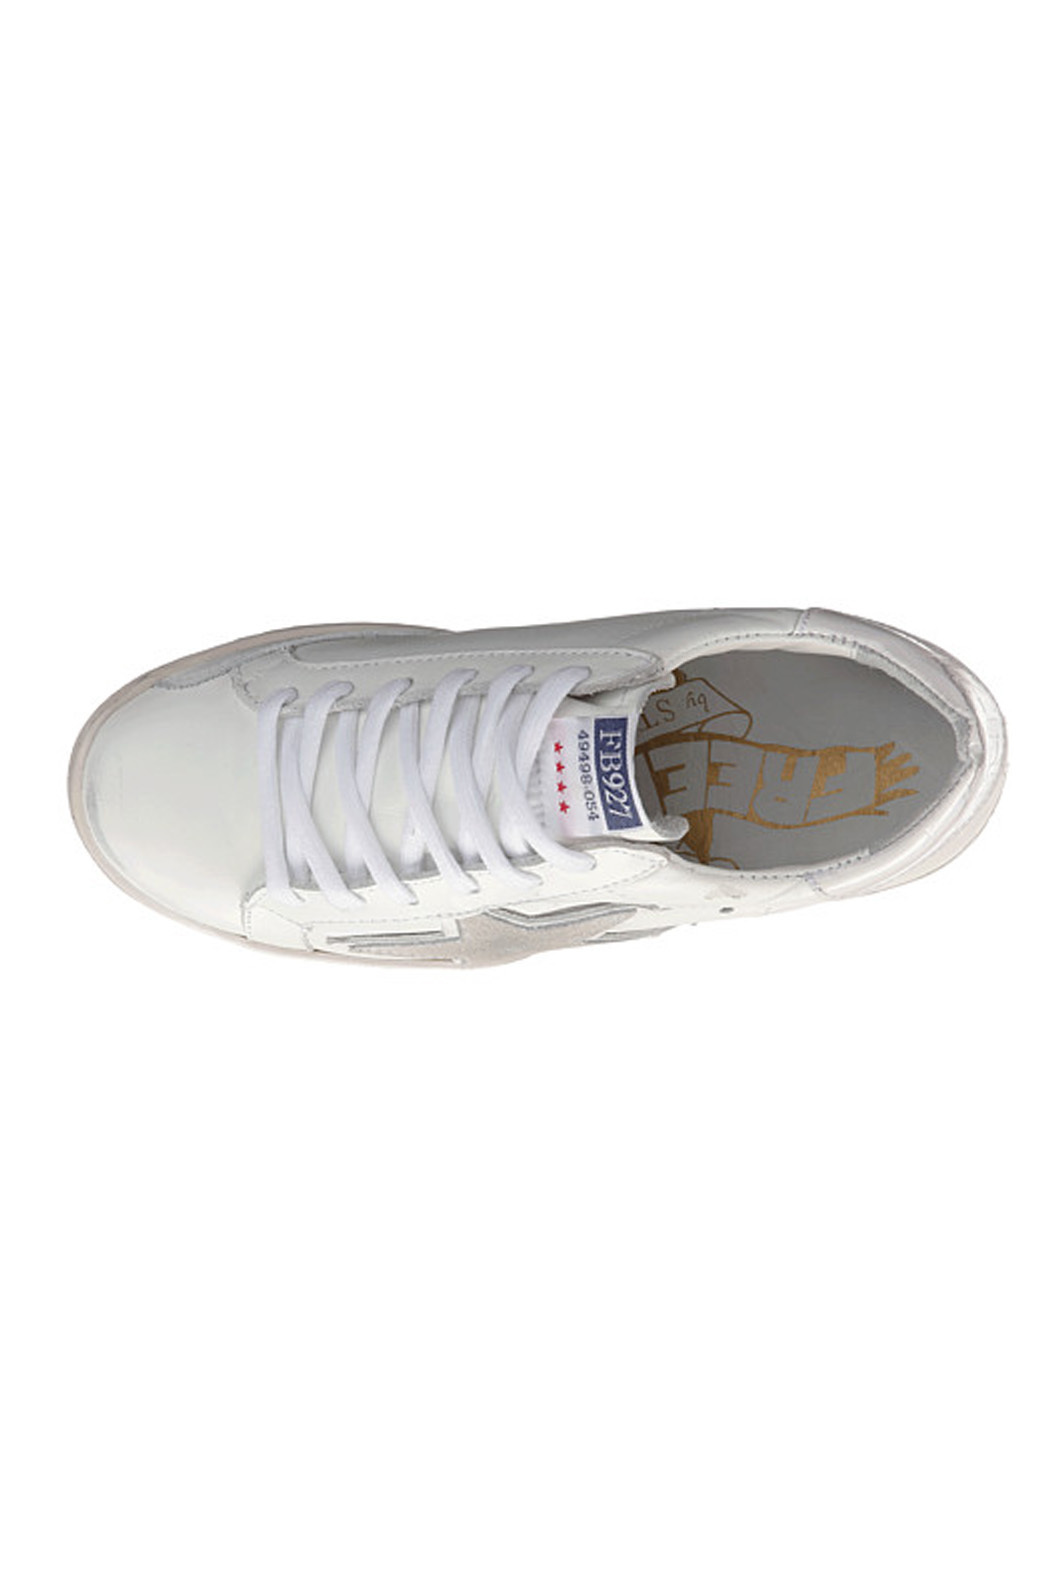 Freebird by Steven Steven Low Top Sneakers - Back Cropped Image